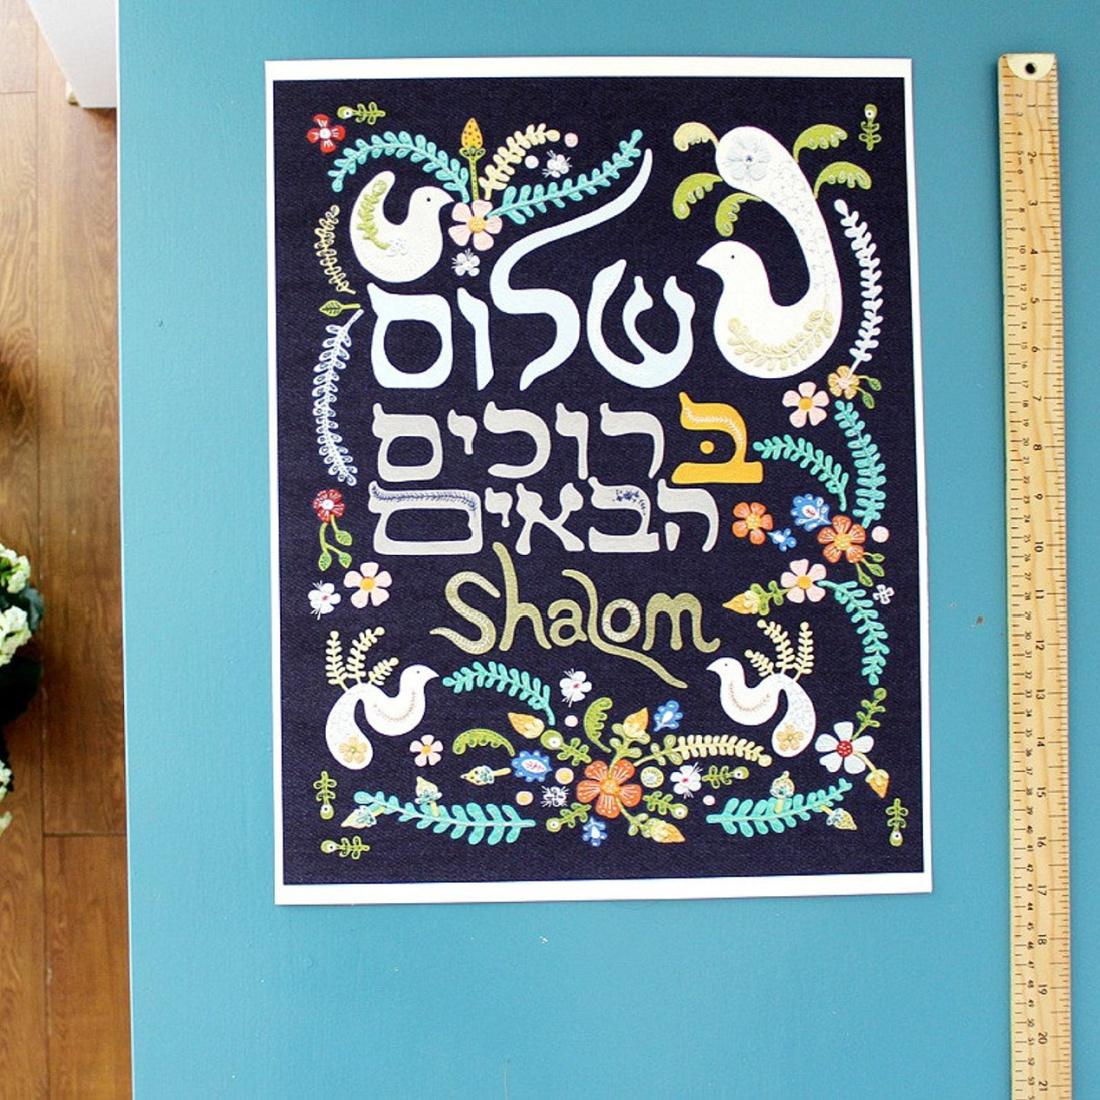 Shalom Welcome Home Print